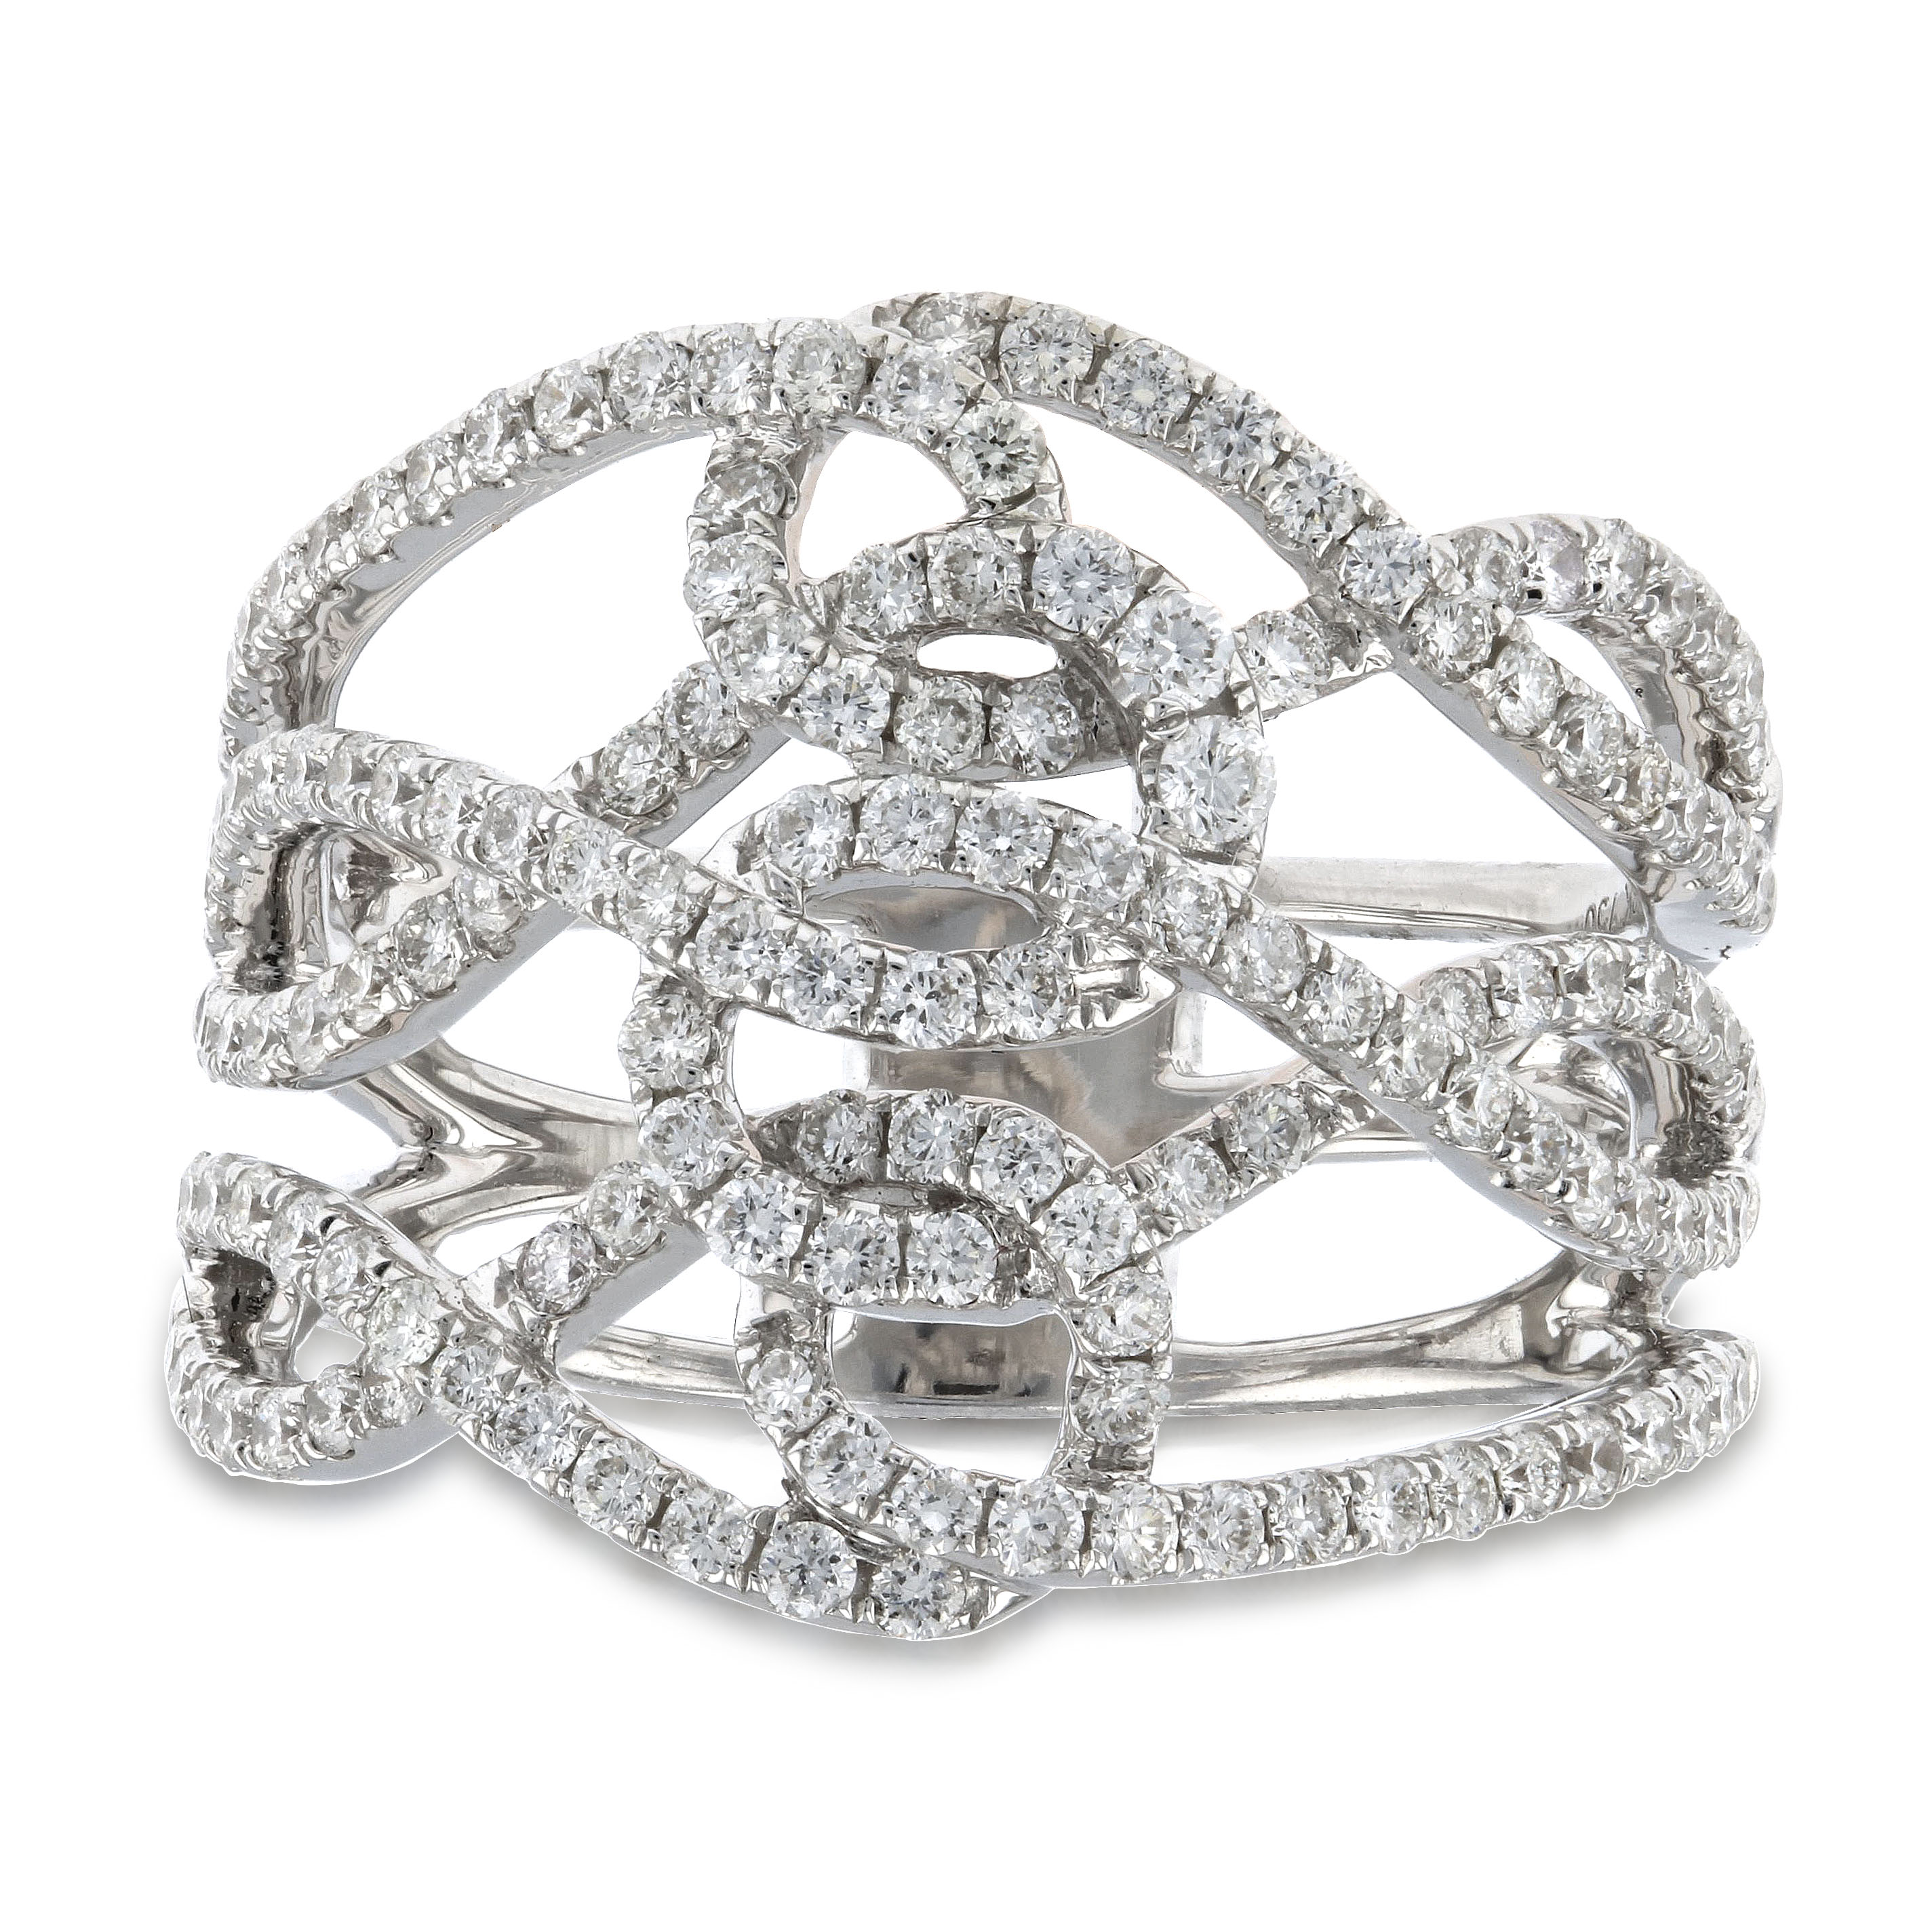 View 1.13ctw Diamond Fashion Ring in 18k White Gold